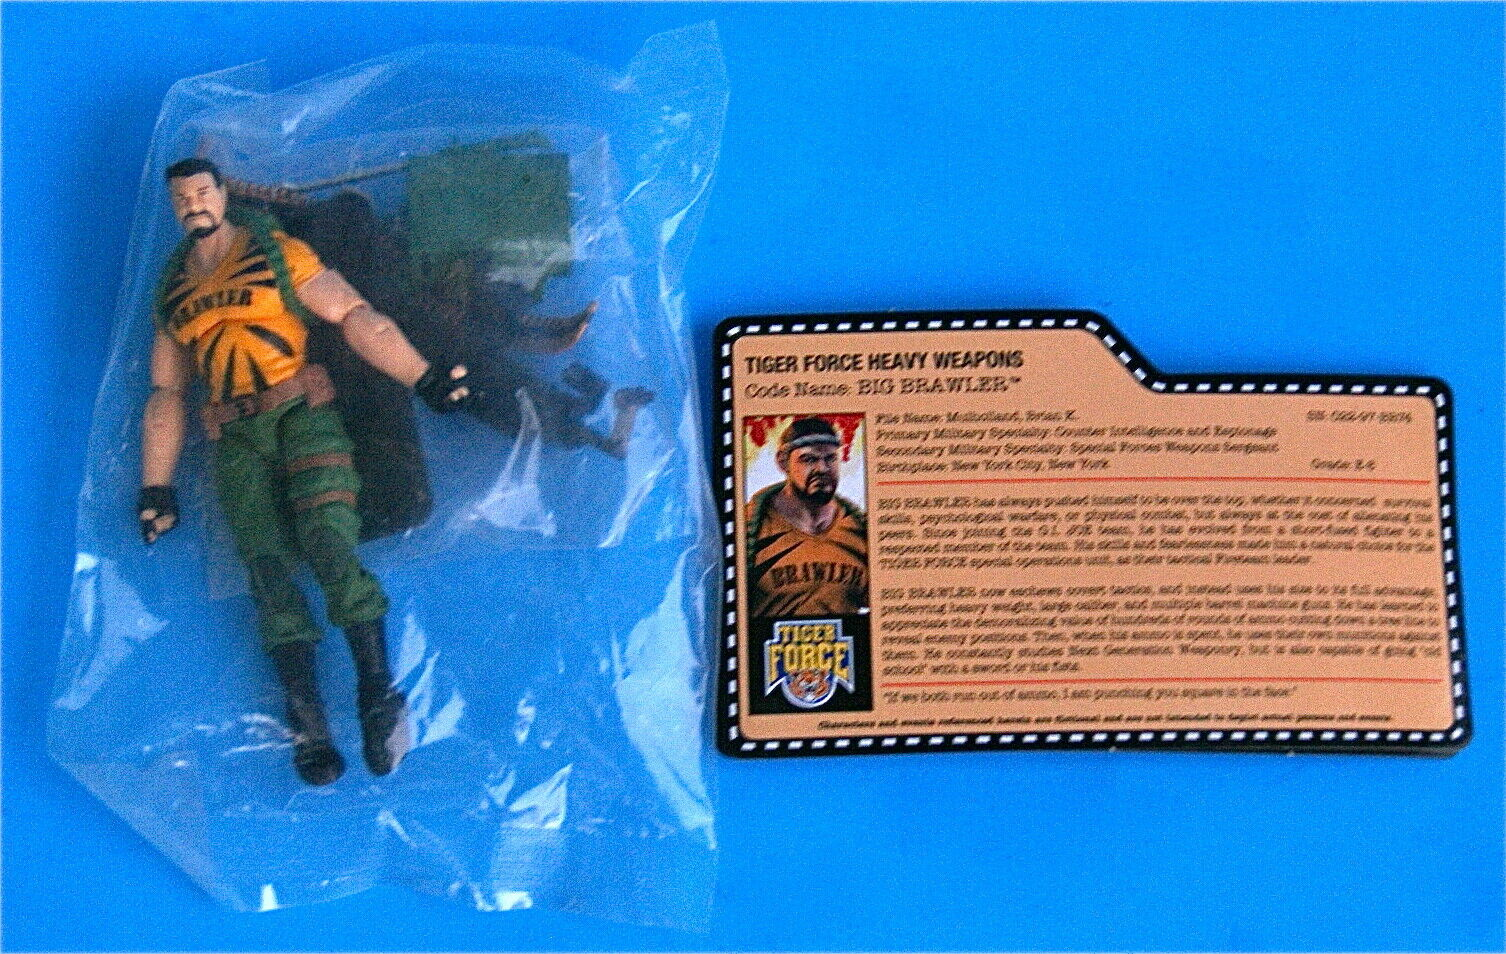 GI JOE TIGER FORCE BRAWLER JOECON SEALED borsa completare